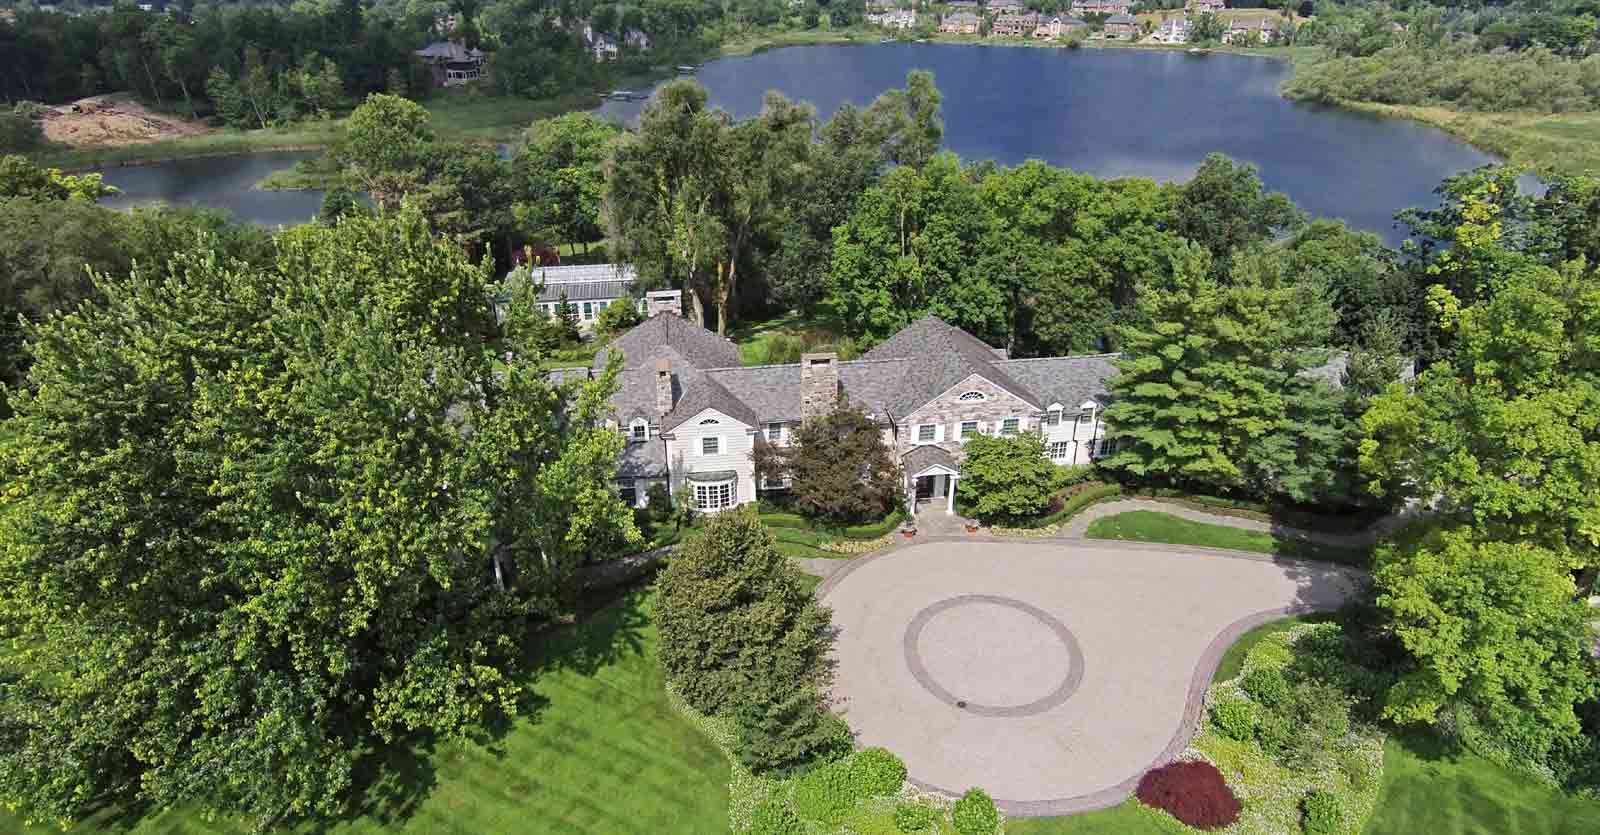 2600 Turtle Lake - Bloomfield Township, Michigan - $10,400,000 USD